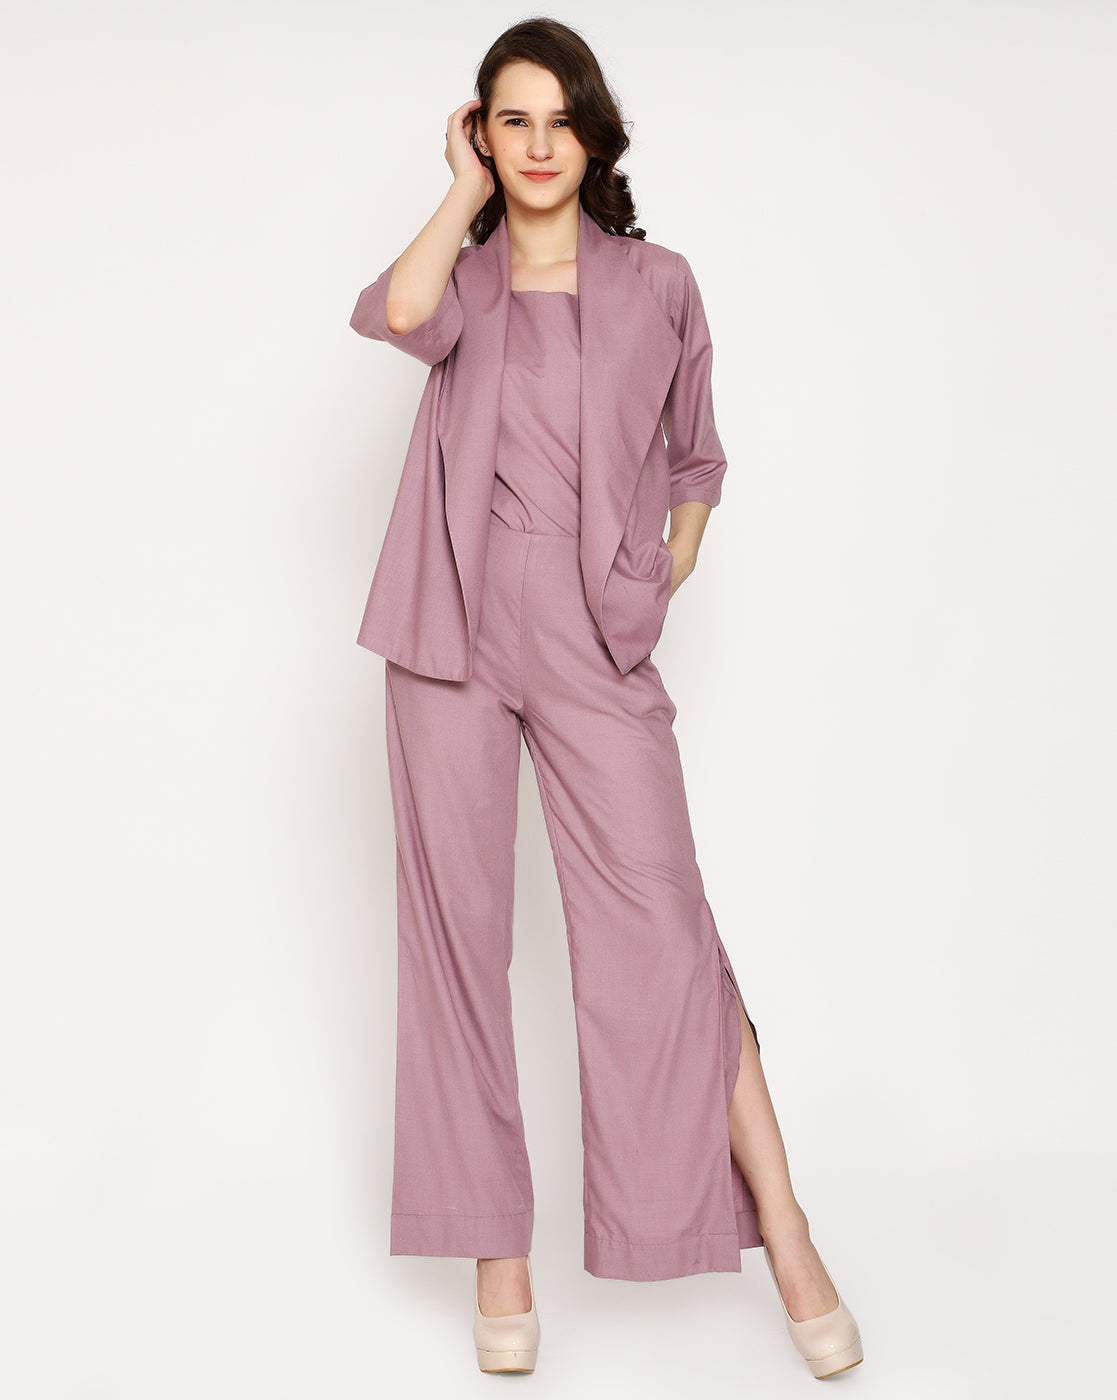 The Vallentino Trouser - Paris Mauve